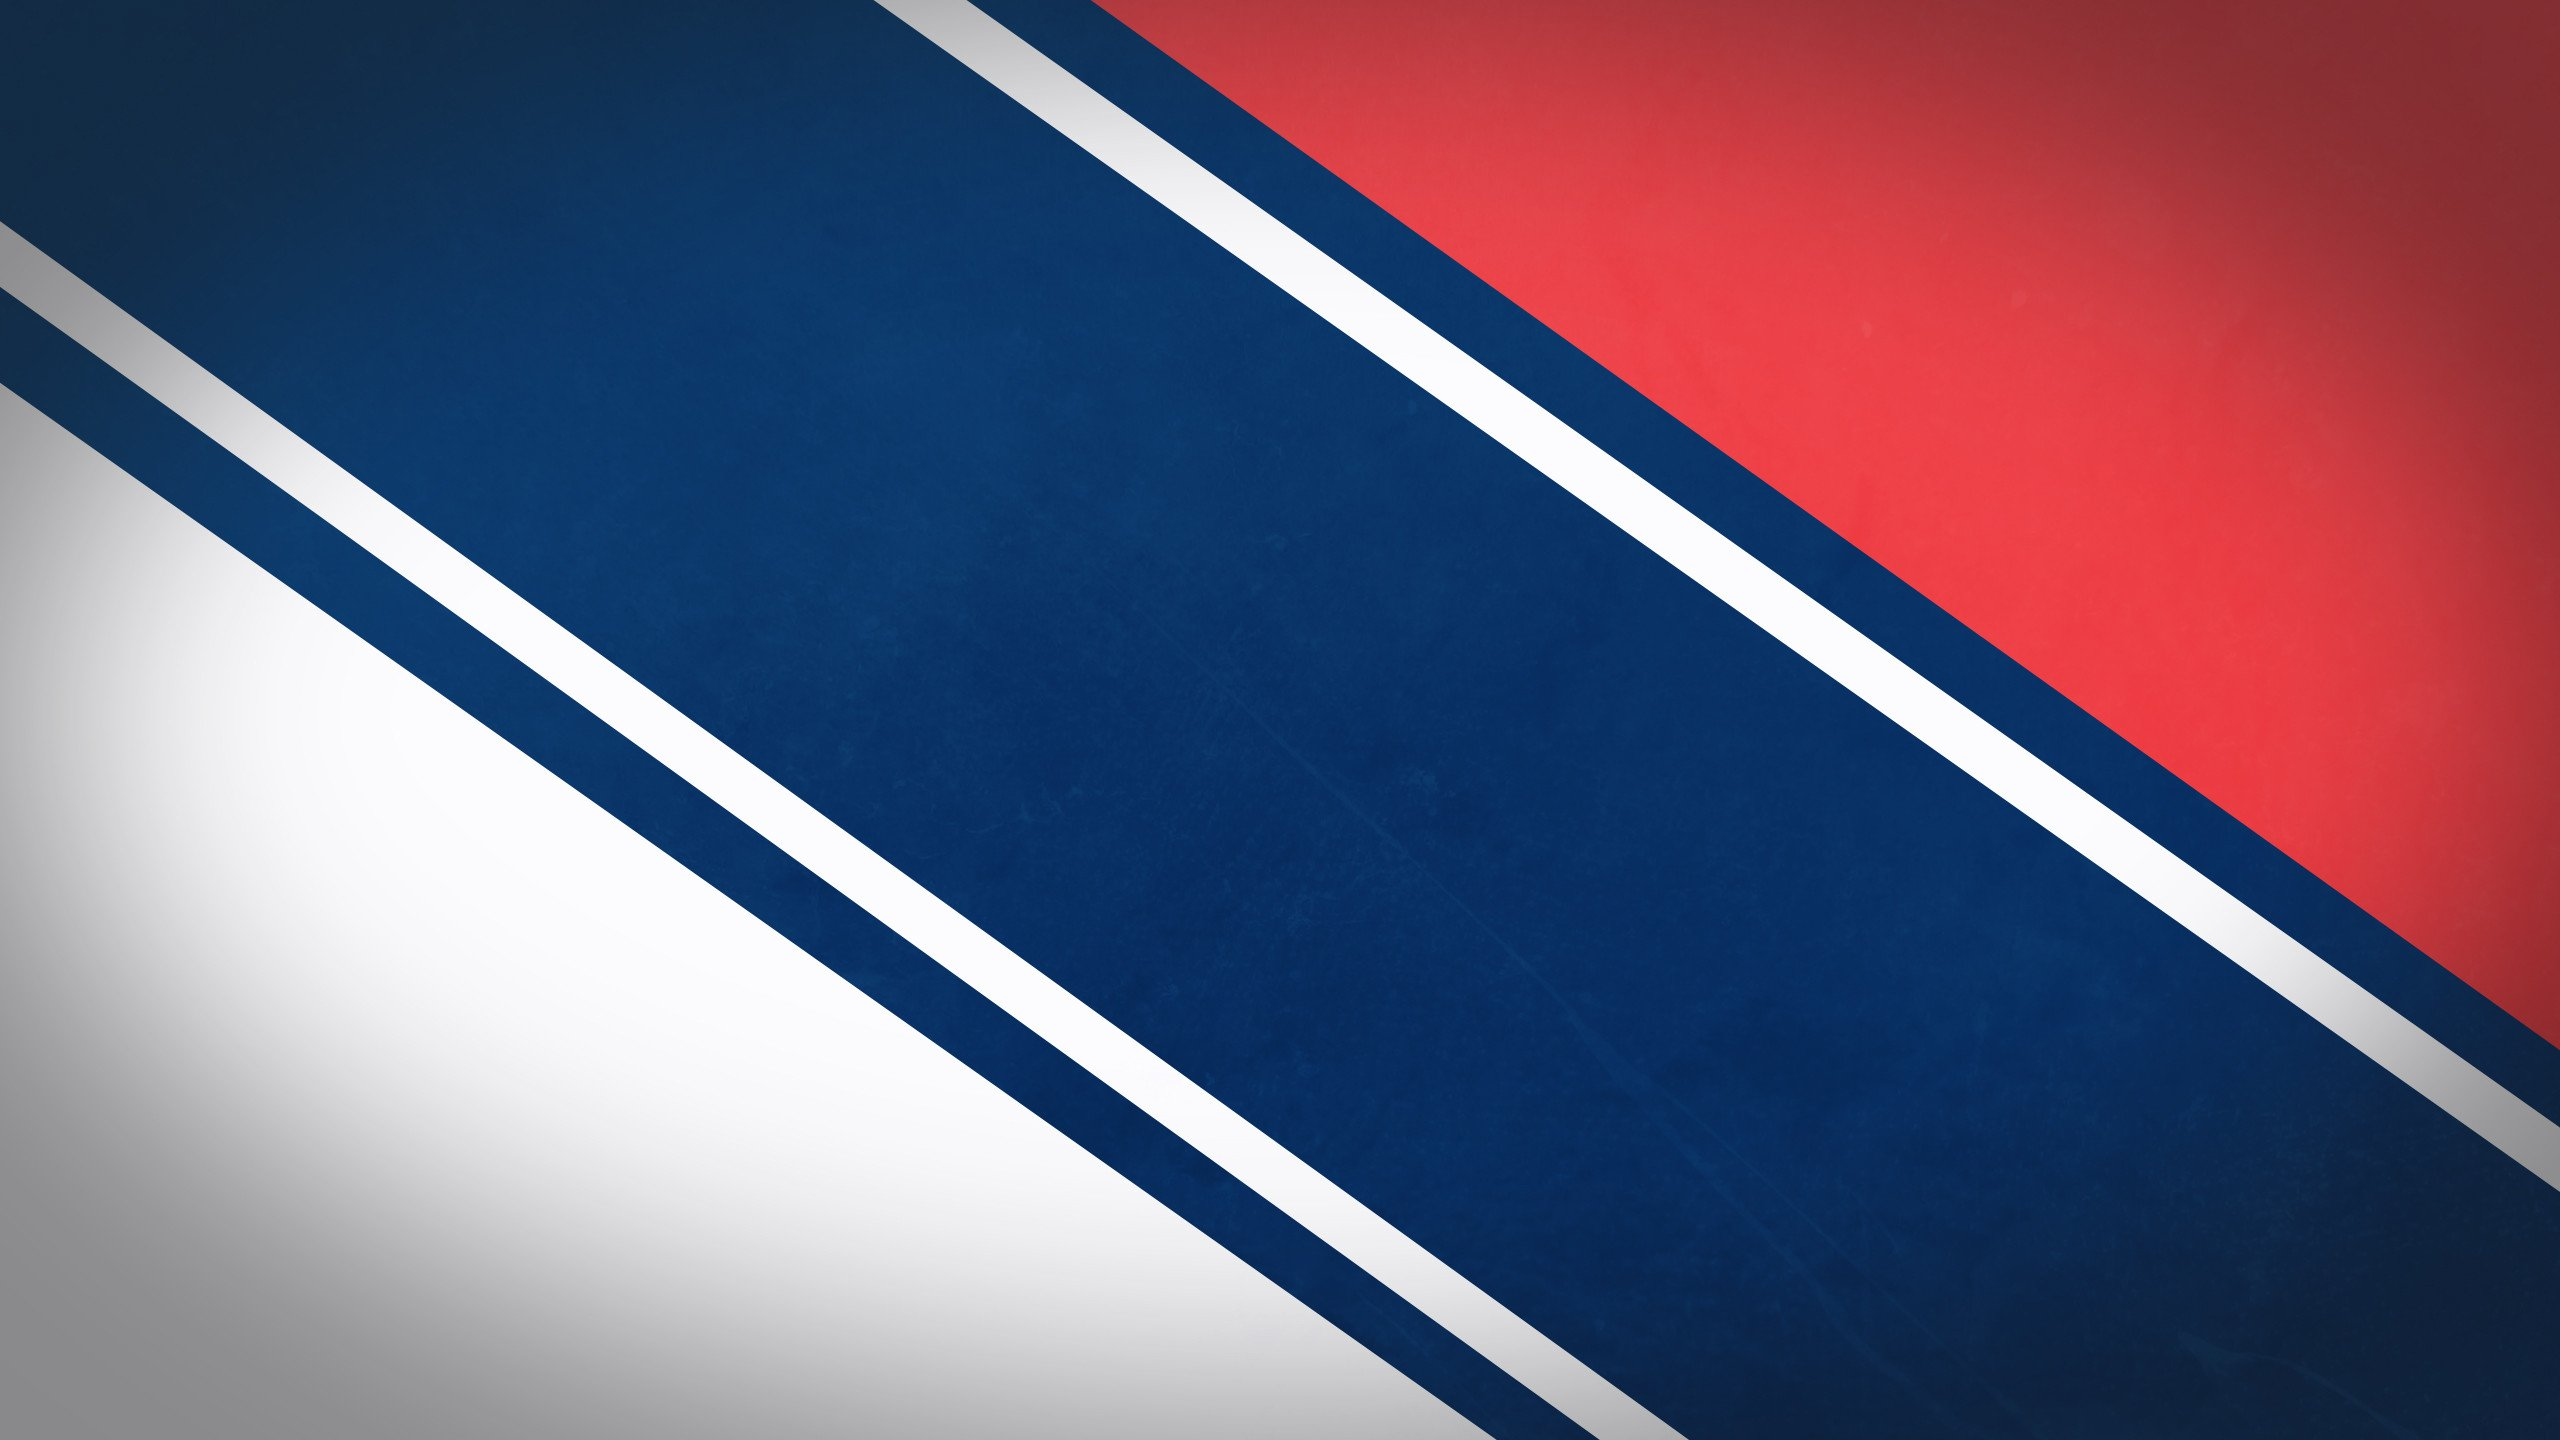 New York Rangers Hockey Nhl 30 Wallpaper 2560x1440 359430